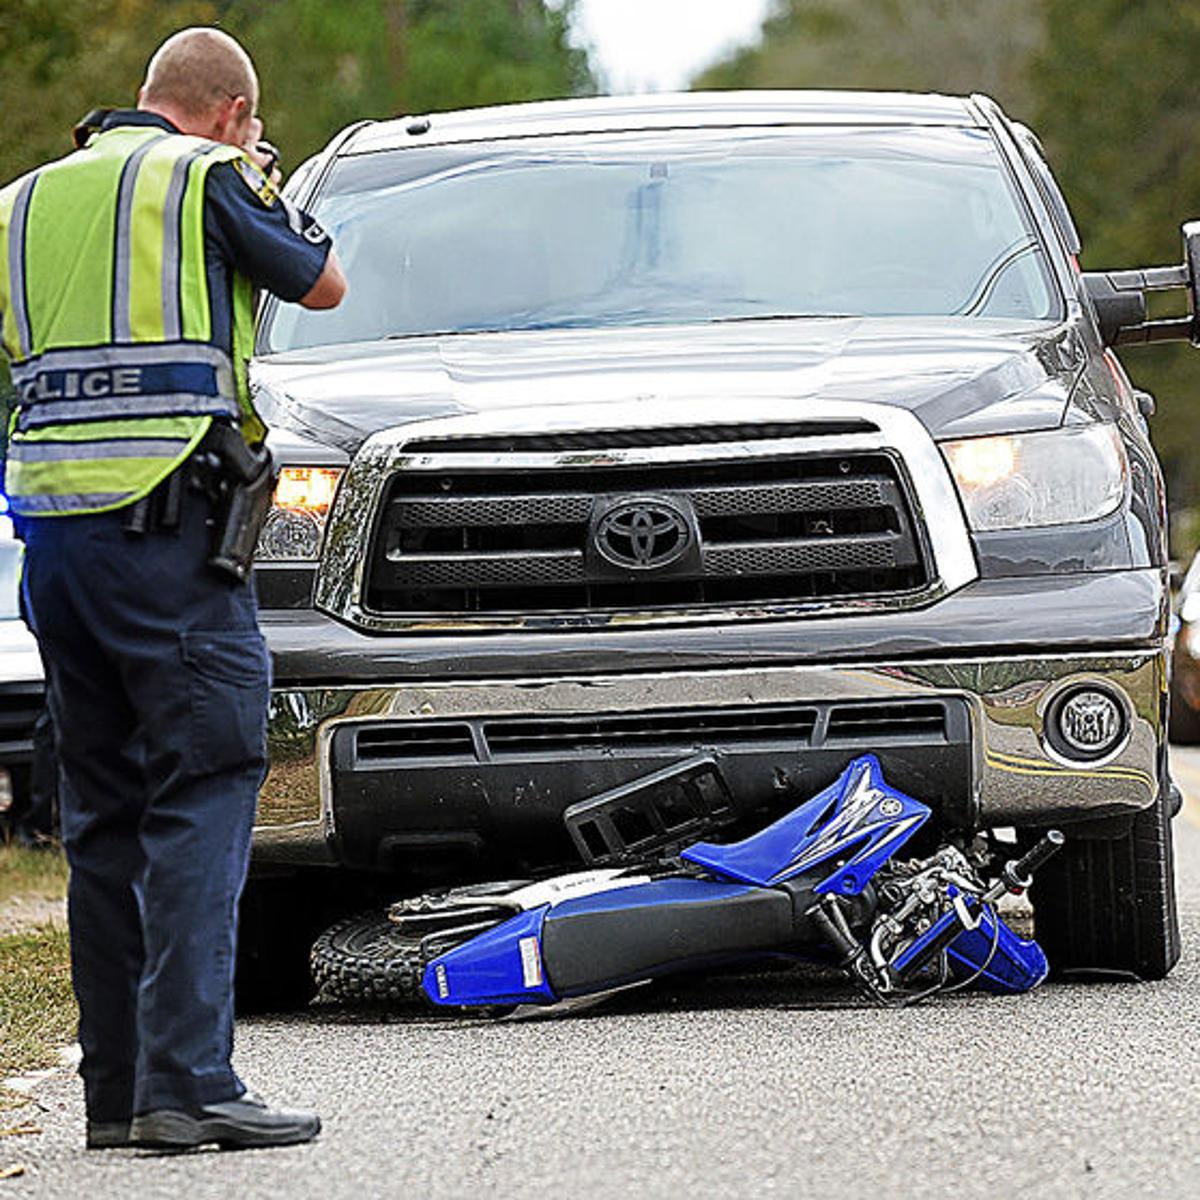 Atv Usage Raises Concerns For Law Enforcement Agencies Crime News Dothaneagle Com